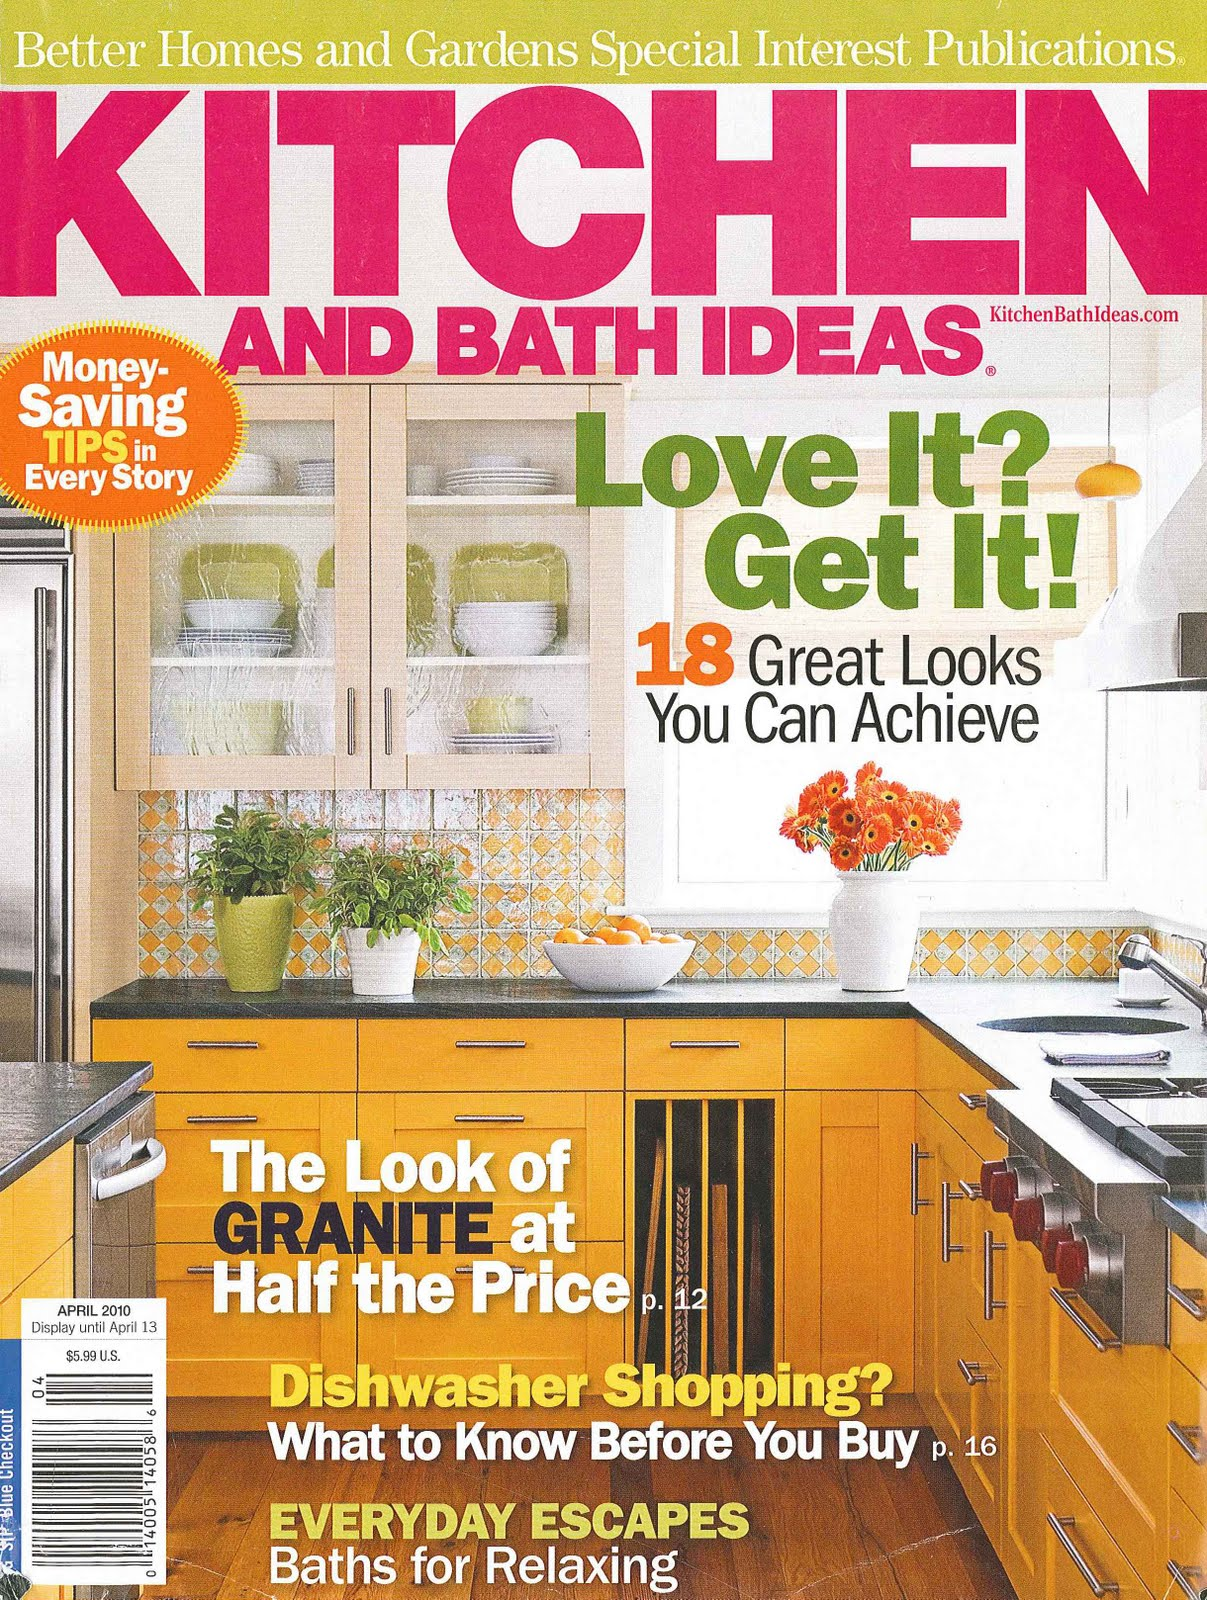 Bhg Kitchen Design bob's blog: better homes and gardens: kitchen and bath ideas